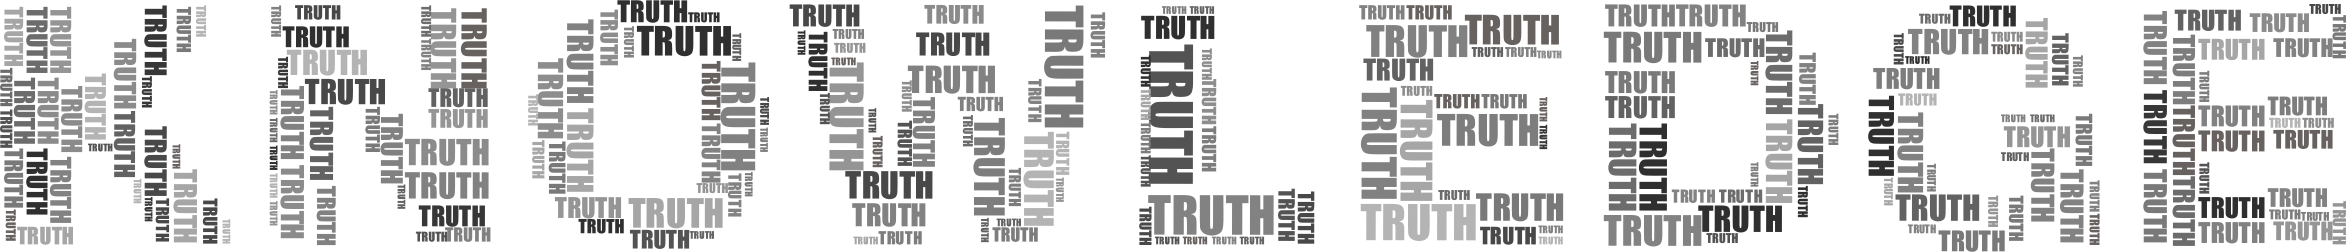 Knowledge And Truth Grayscale by GDJ